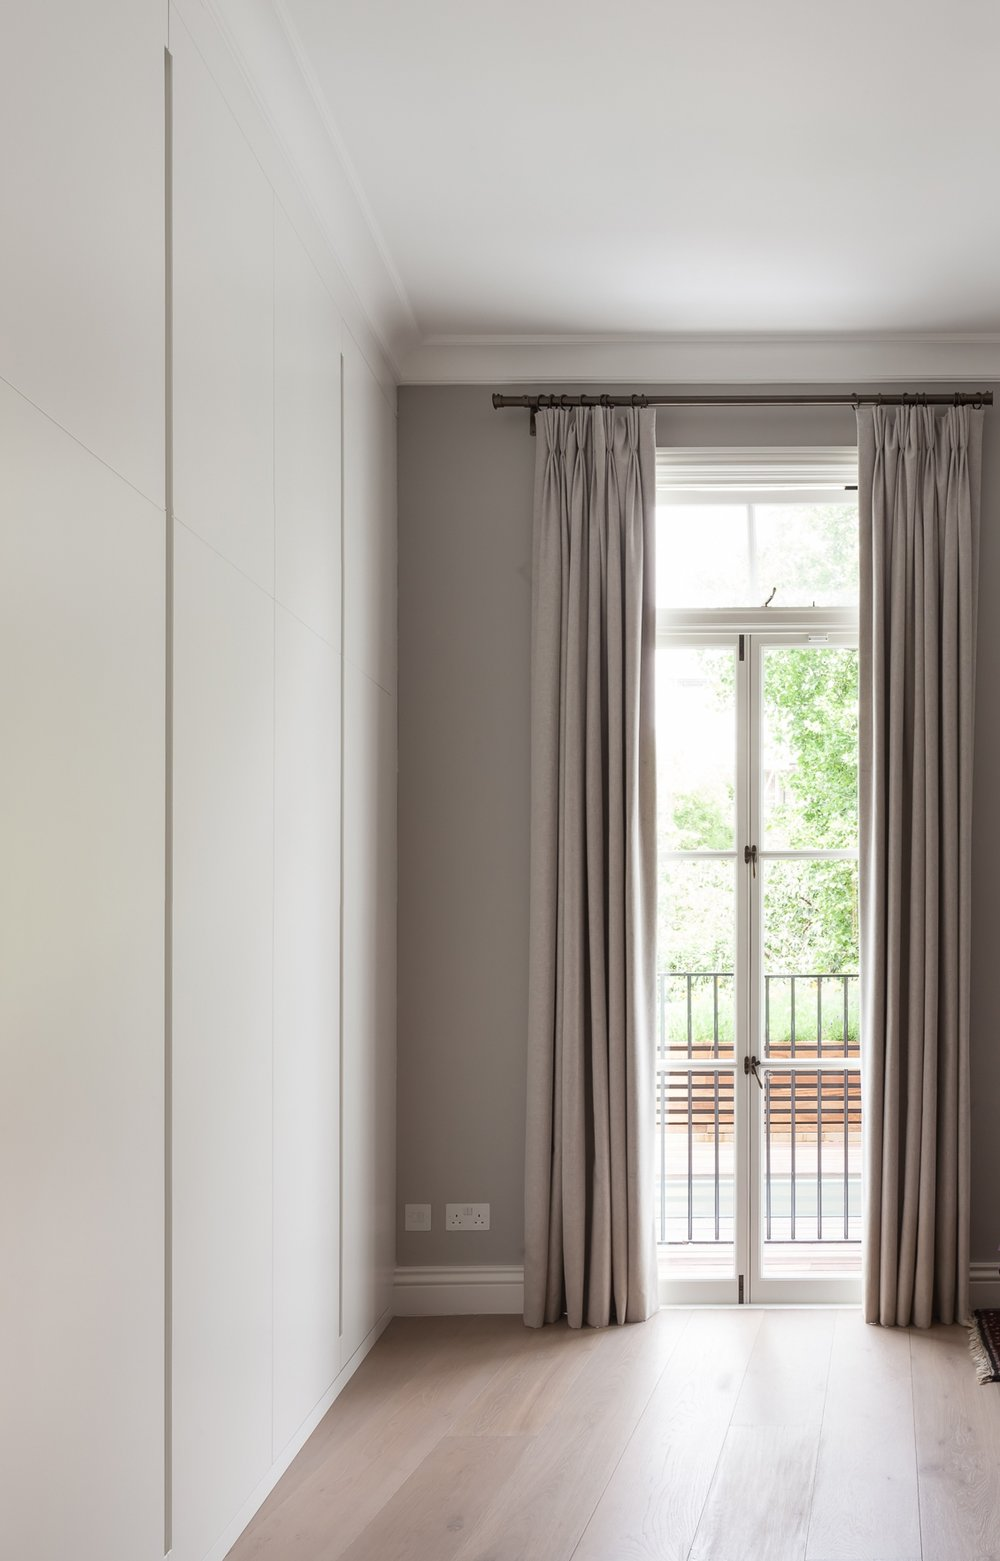 John Foat Architects - Architect Brighton, Notting Hill 20